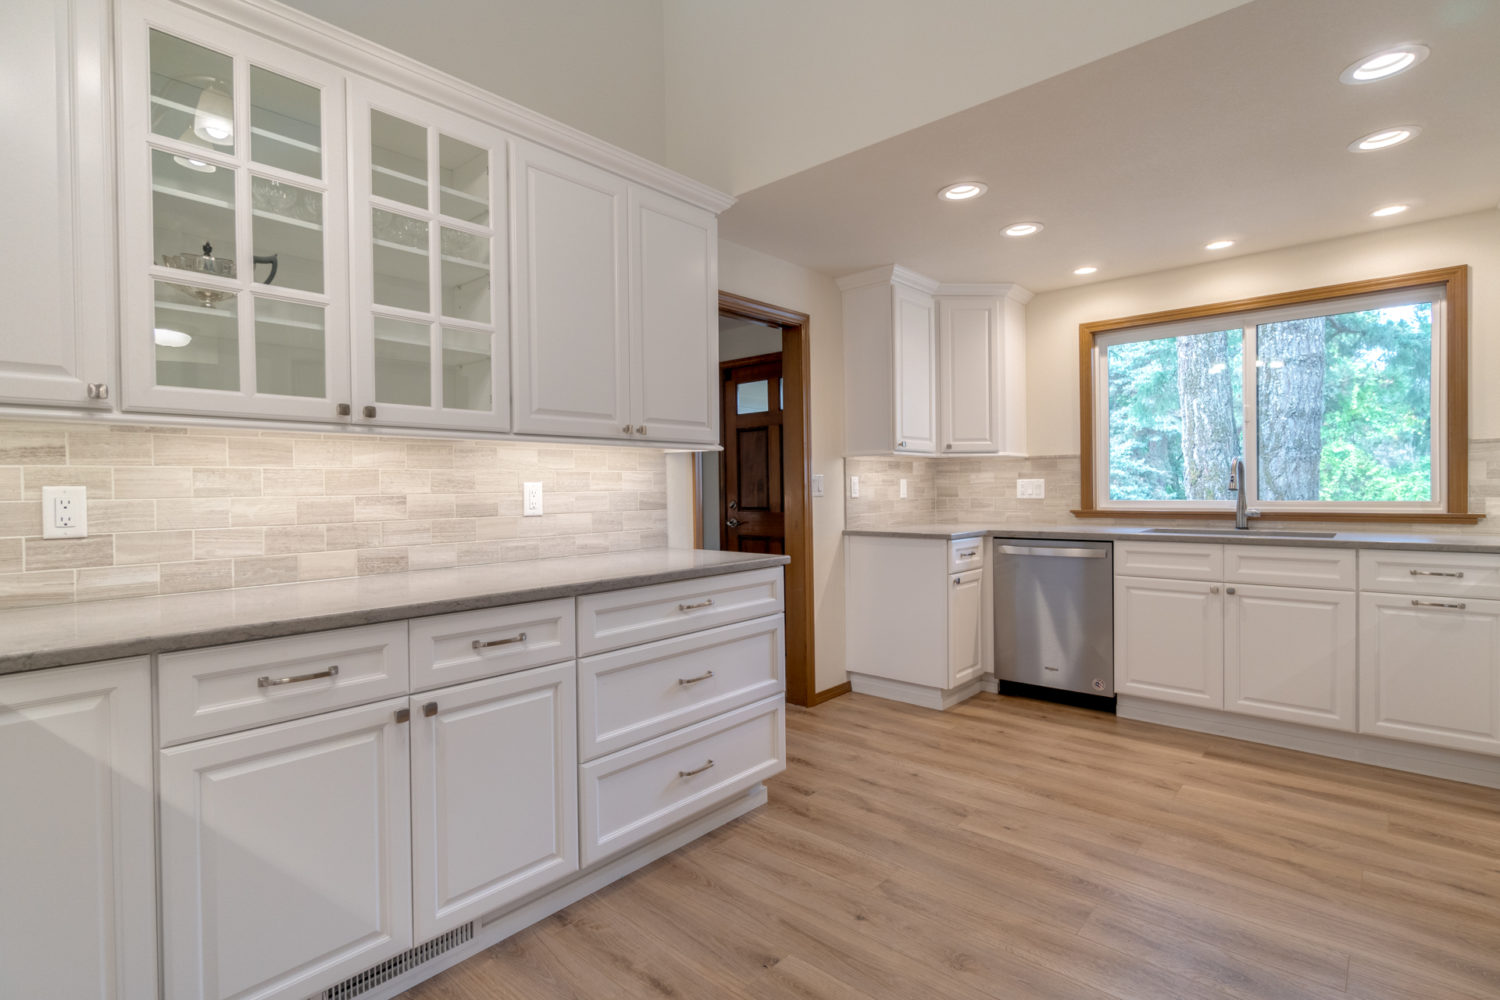 whole home remodel - kitchen